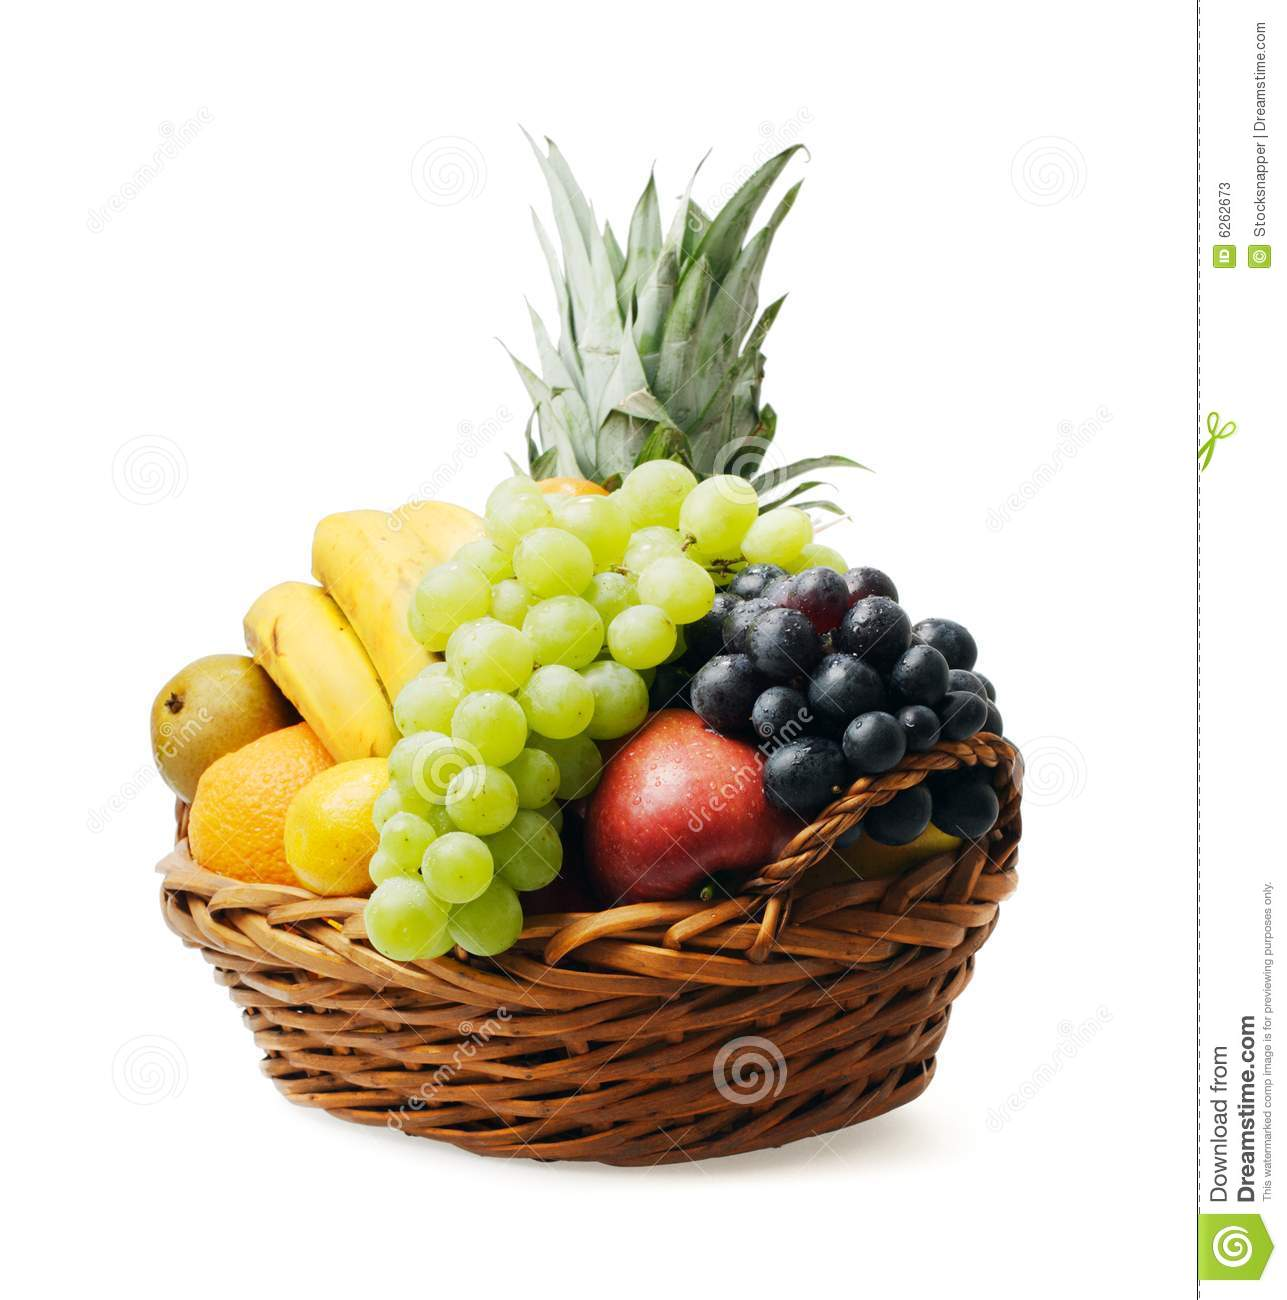 Fruit basket with mixed fruit on white background.